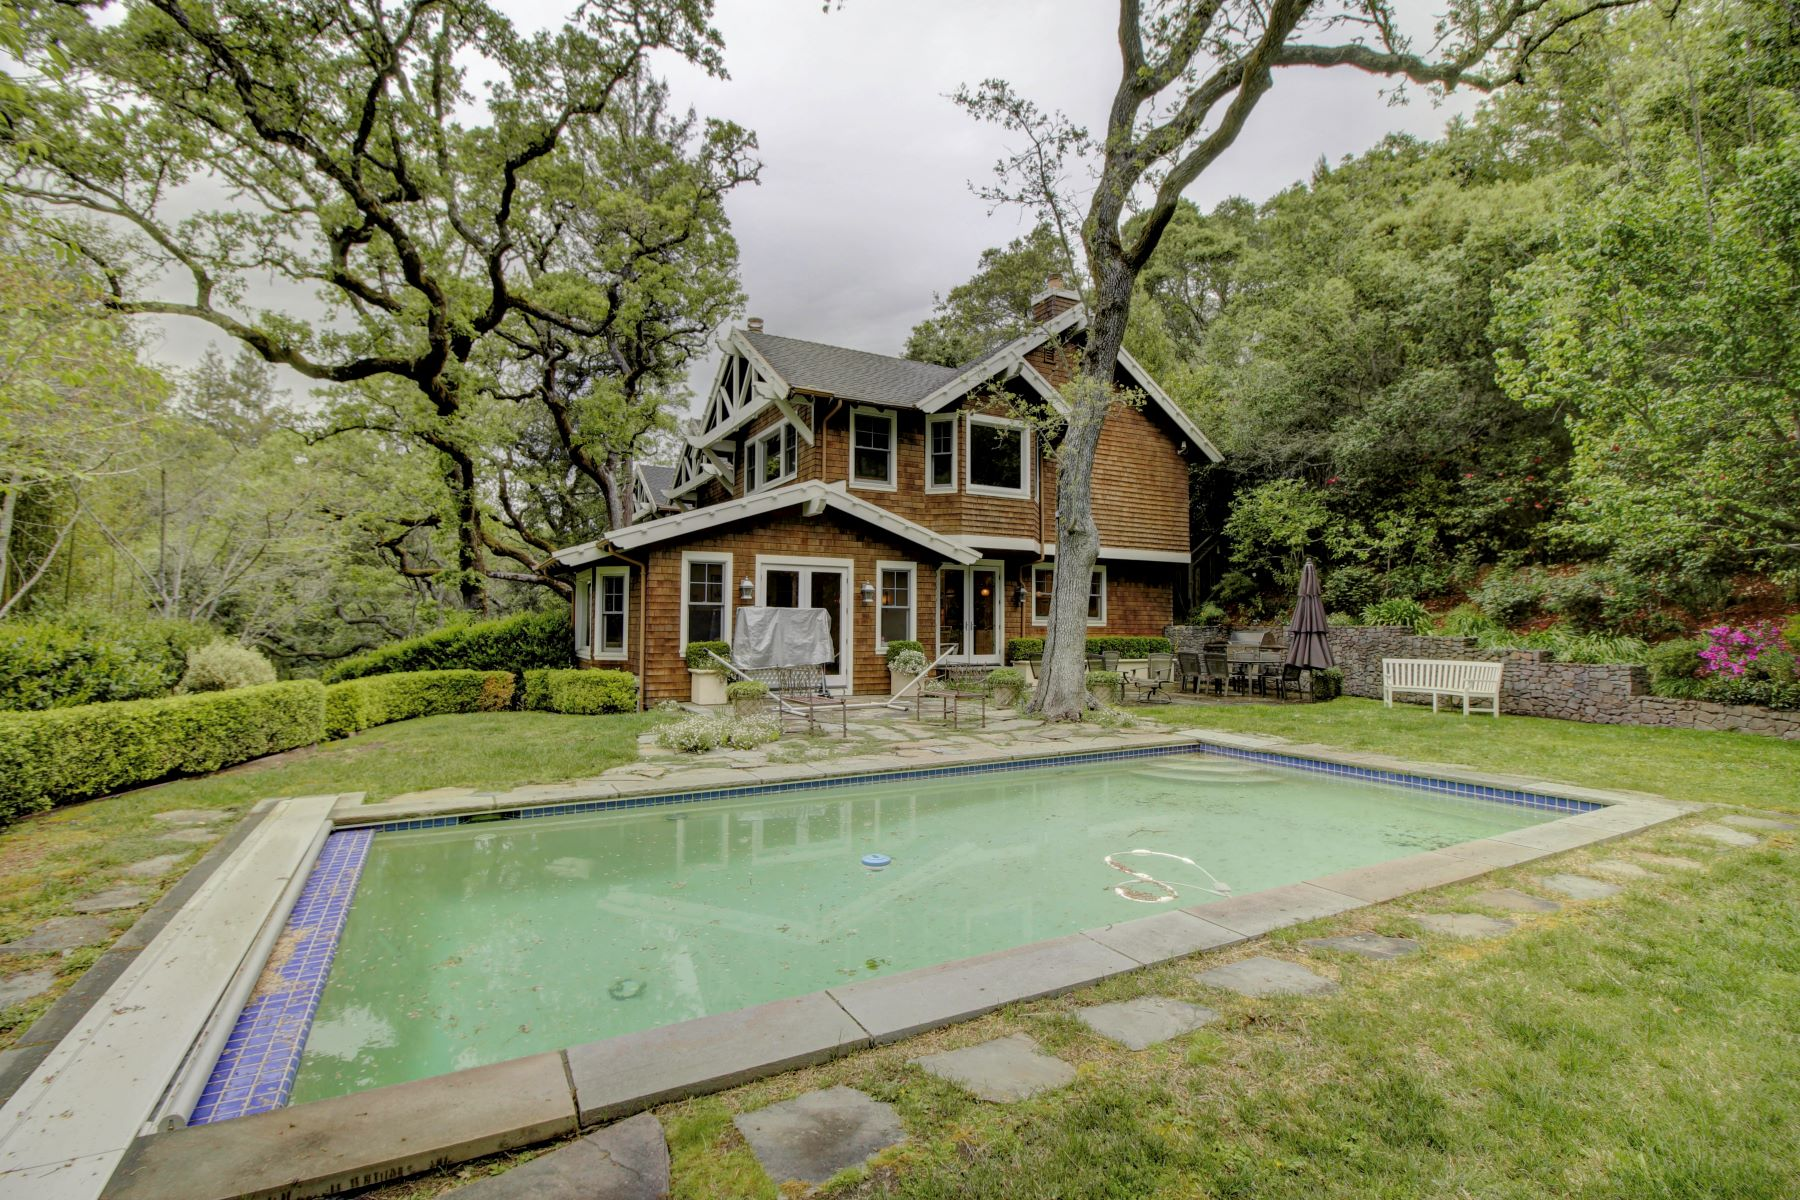 Single Family Home for Sale at Jim Kelly Built Craftsman in the Flats of Kent Woodlands 45 Evergreen Drive Kentfield, California 94904 United States